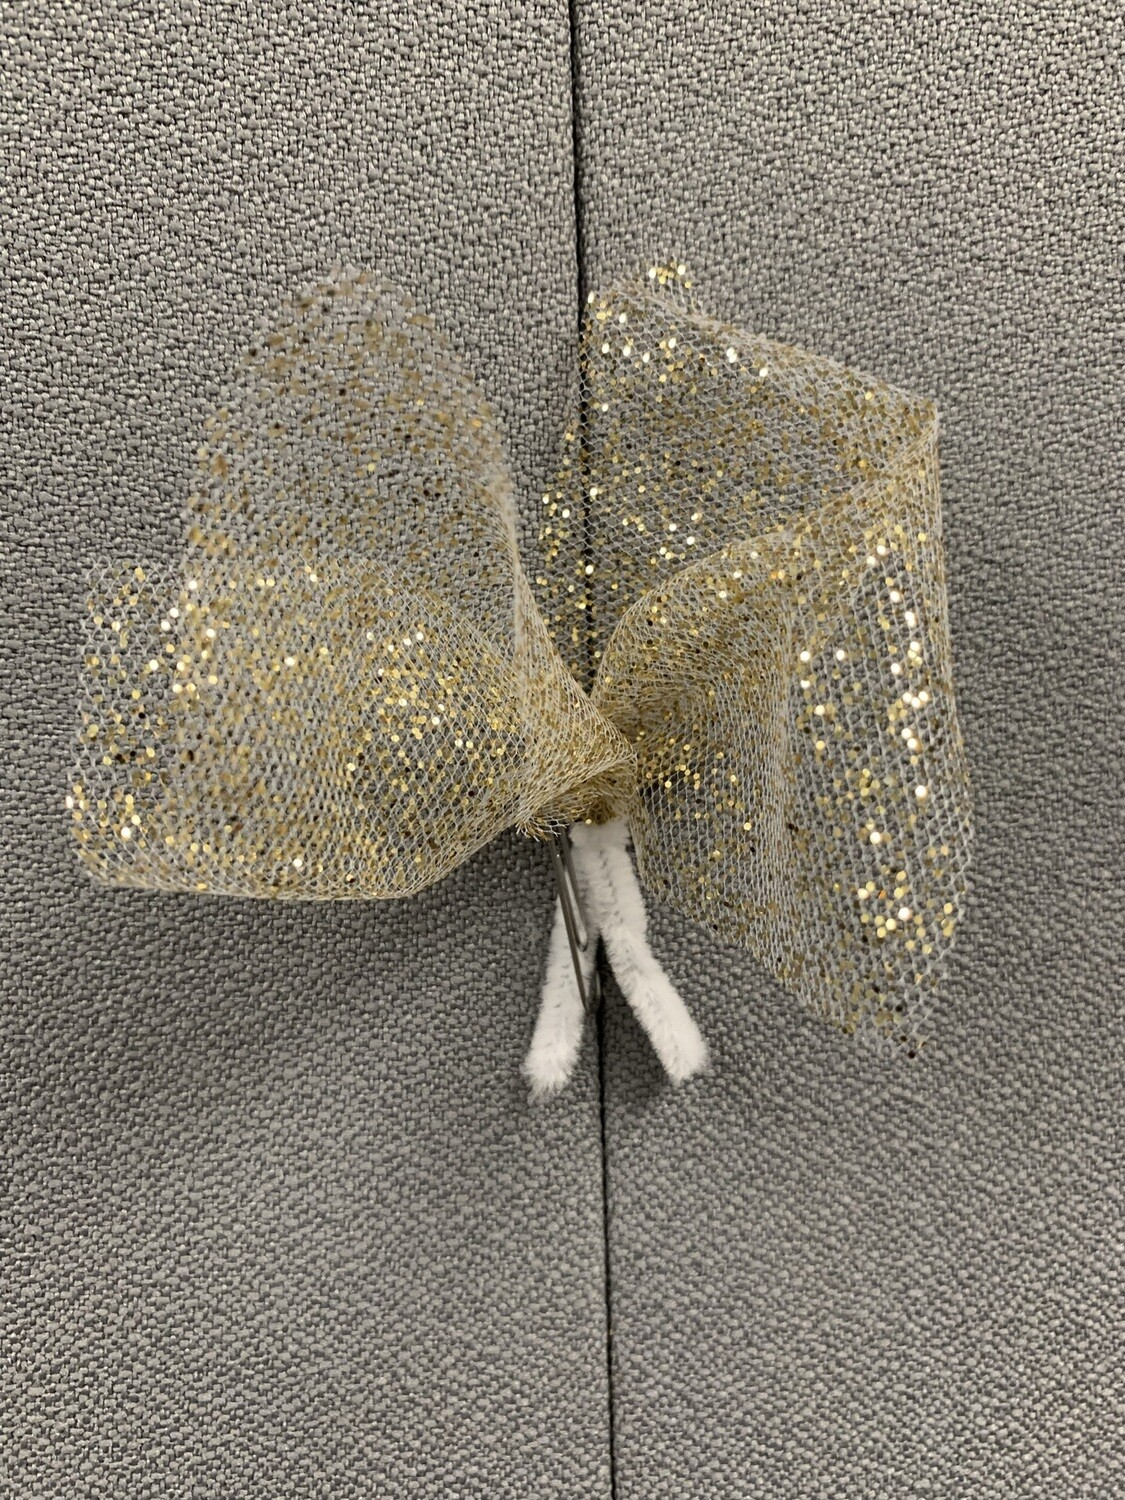 3 Tulle Puffs-gold or silver